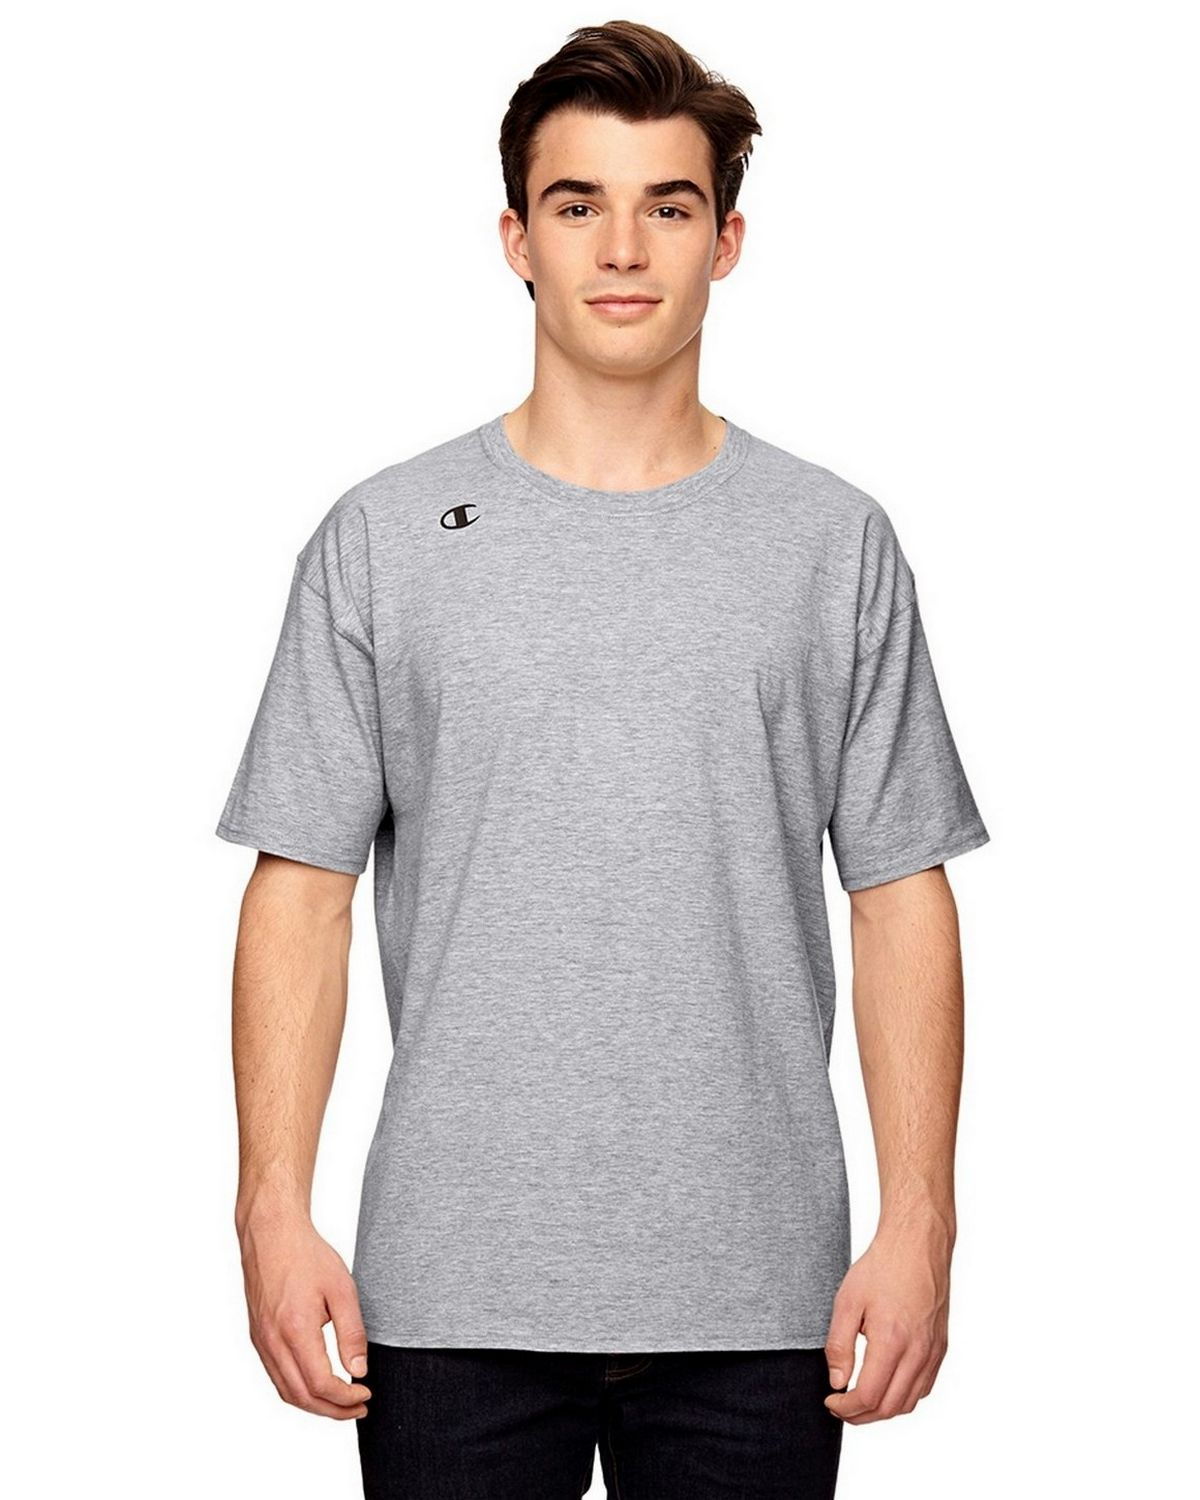 Champion T380 Vapor Cotton T-Shirt - Sport Maroon - M T380